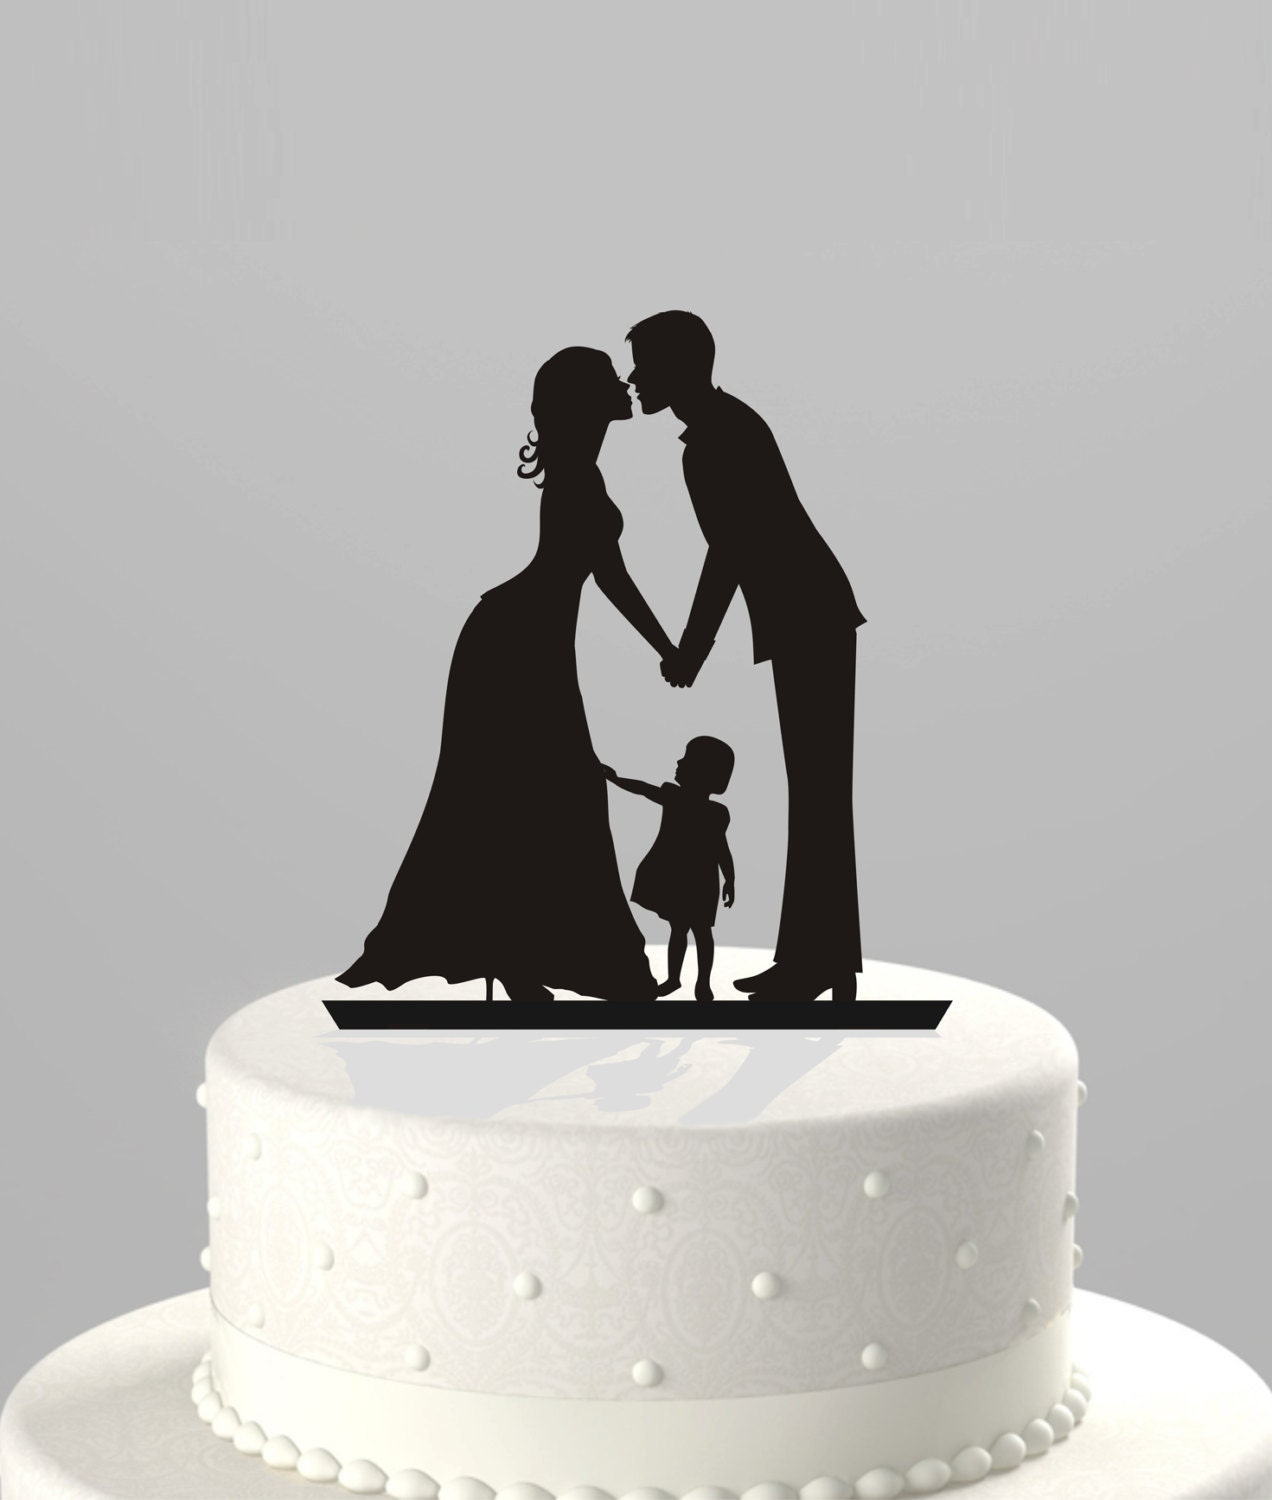 Wedding Cake Topper Silhouette Groom and Bride by